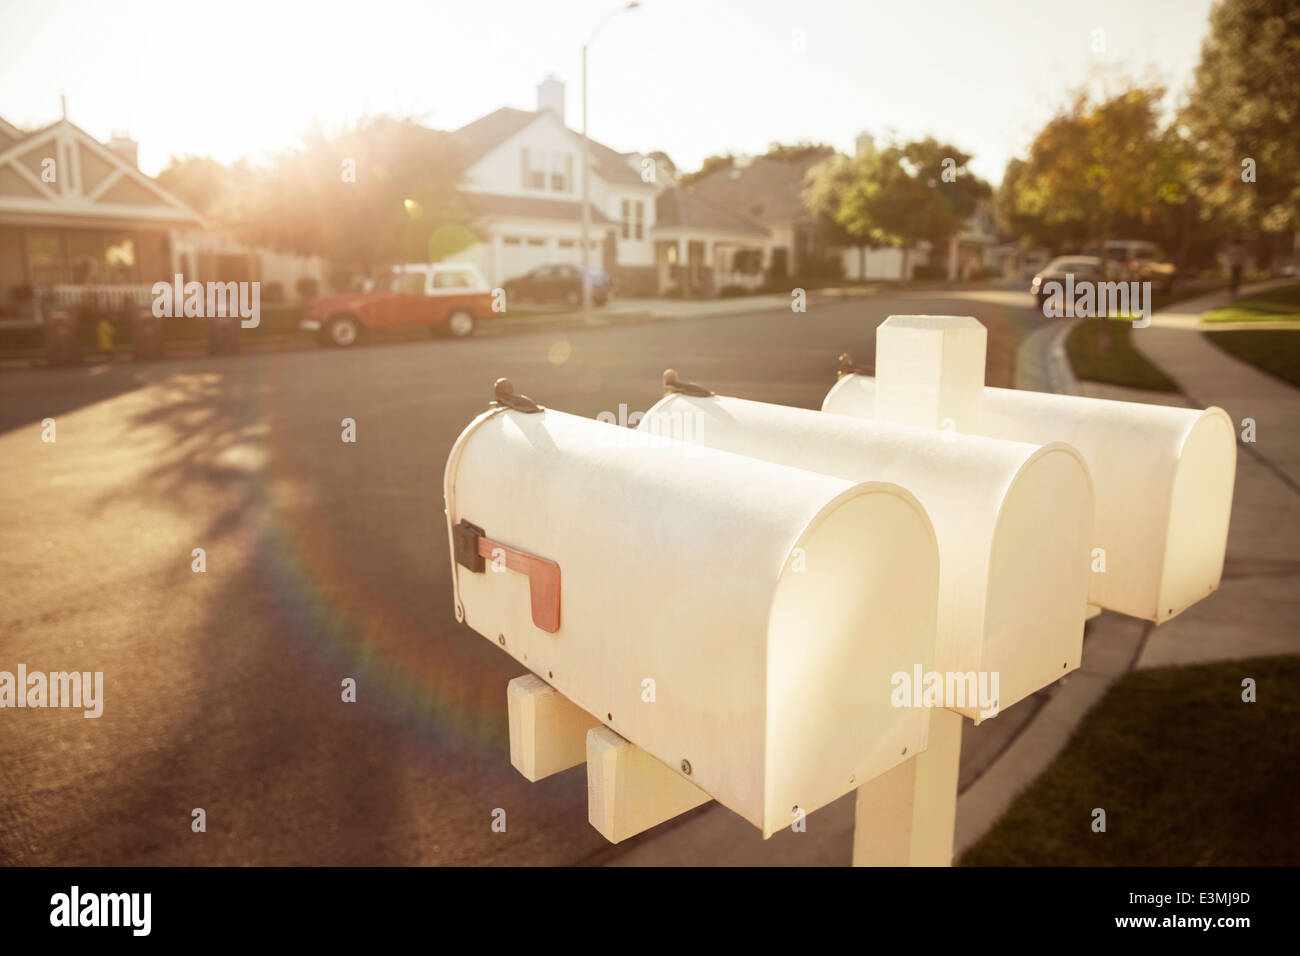 Mailboxes on suburban street - Stock Image